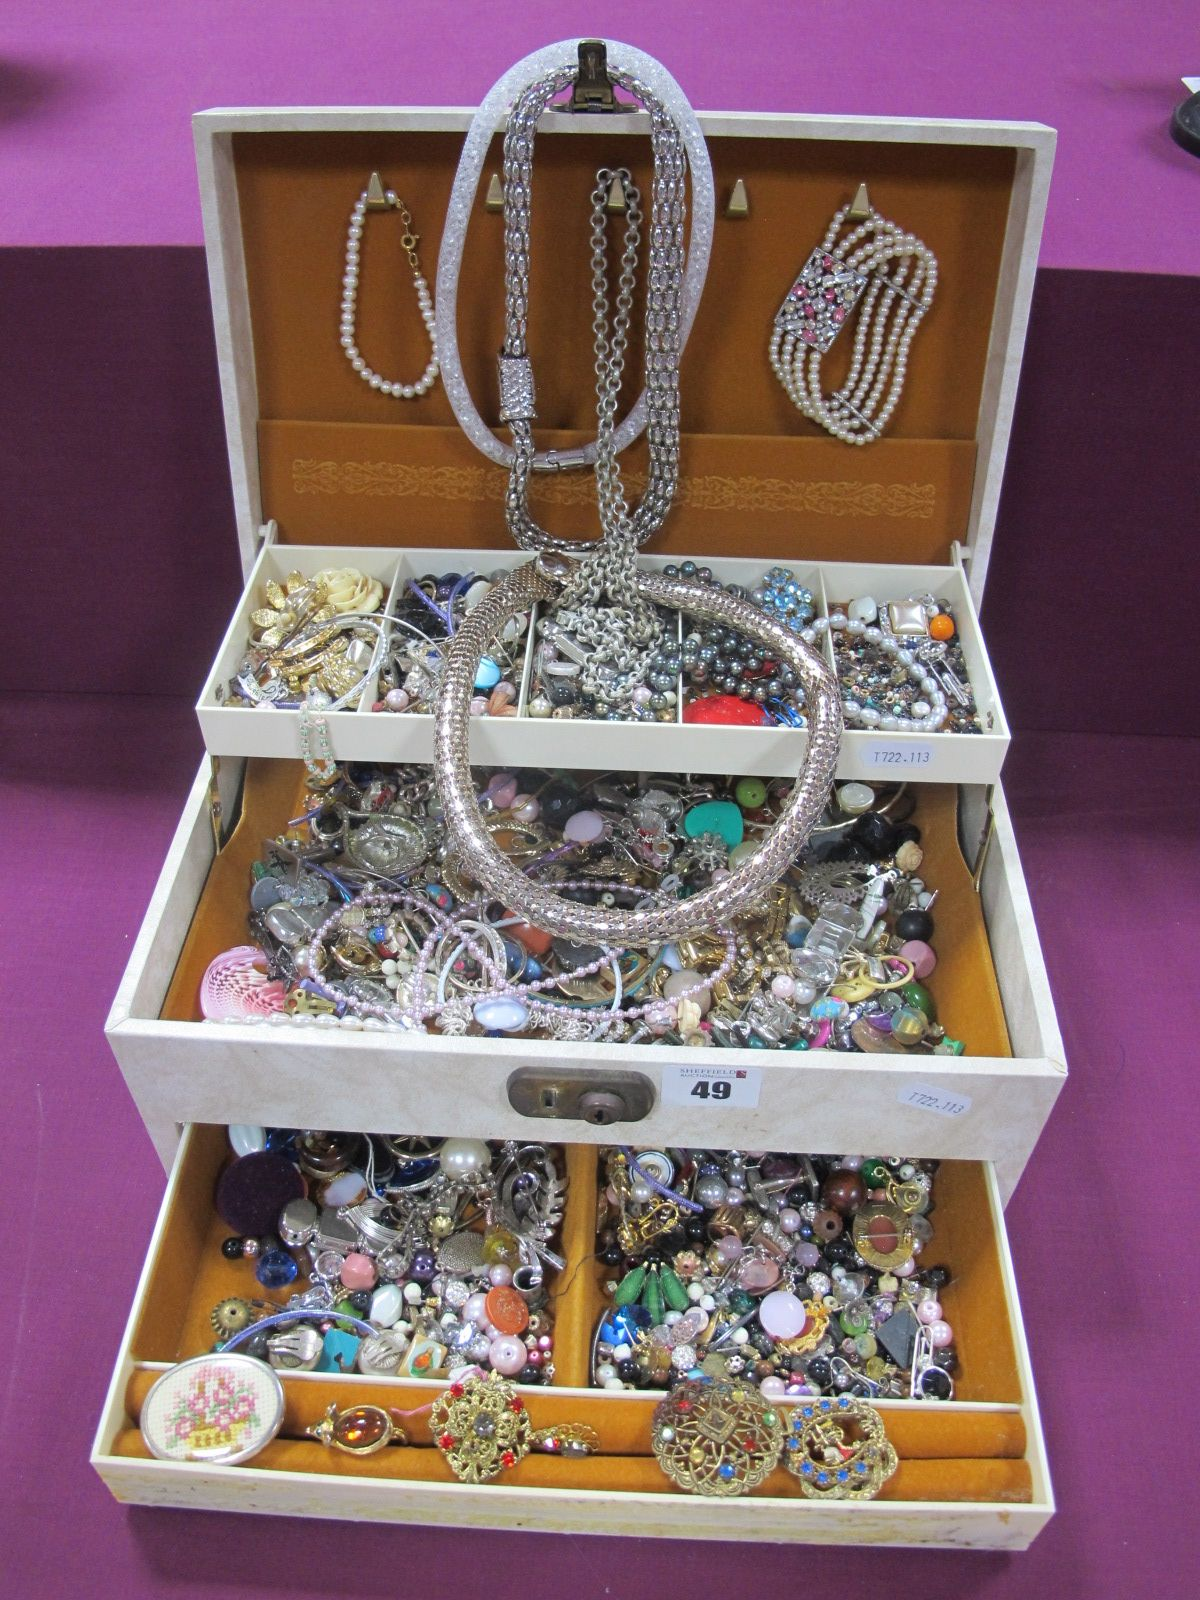 A Jewellery Box Containing Assorted Costume Jewellery, including brooches, necklaces, fresh water